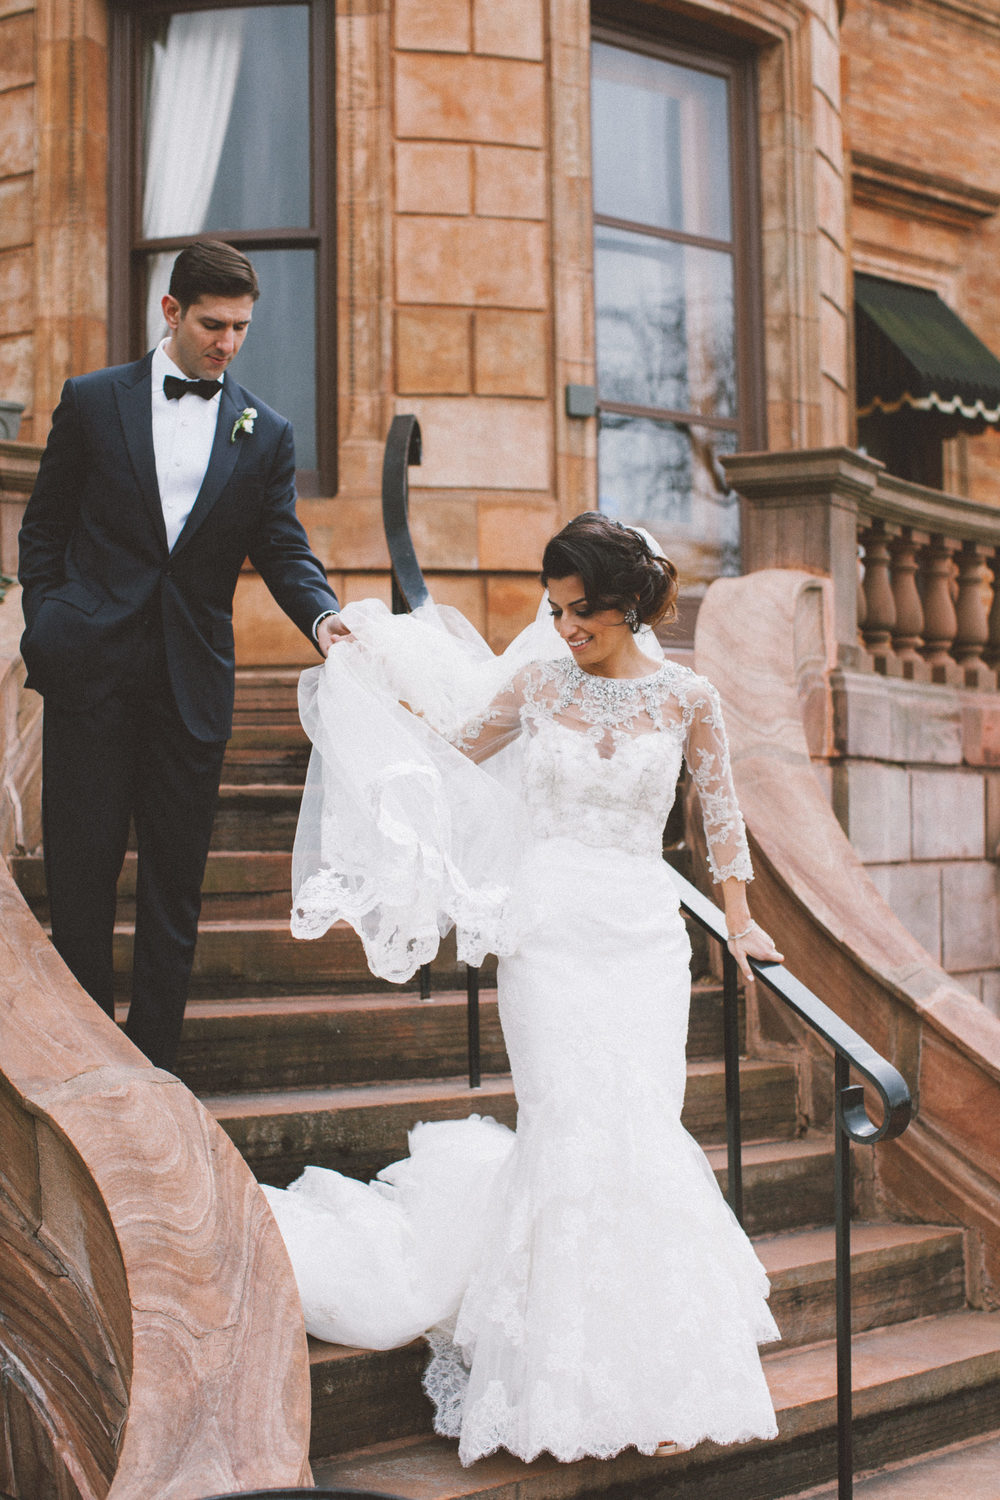 Canadian Club Brand Centre Wedding, Ontario wedding photographer Nikki Mills - Enzoani Gown